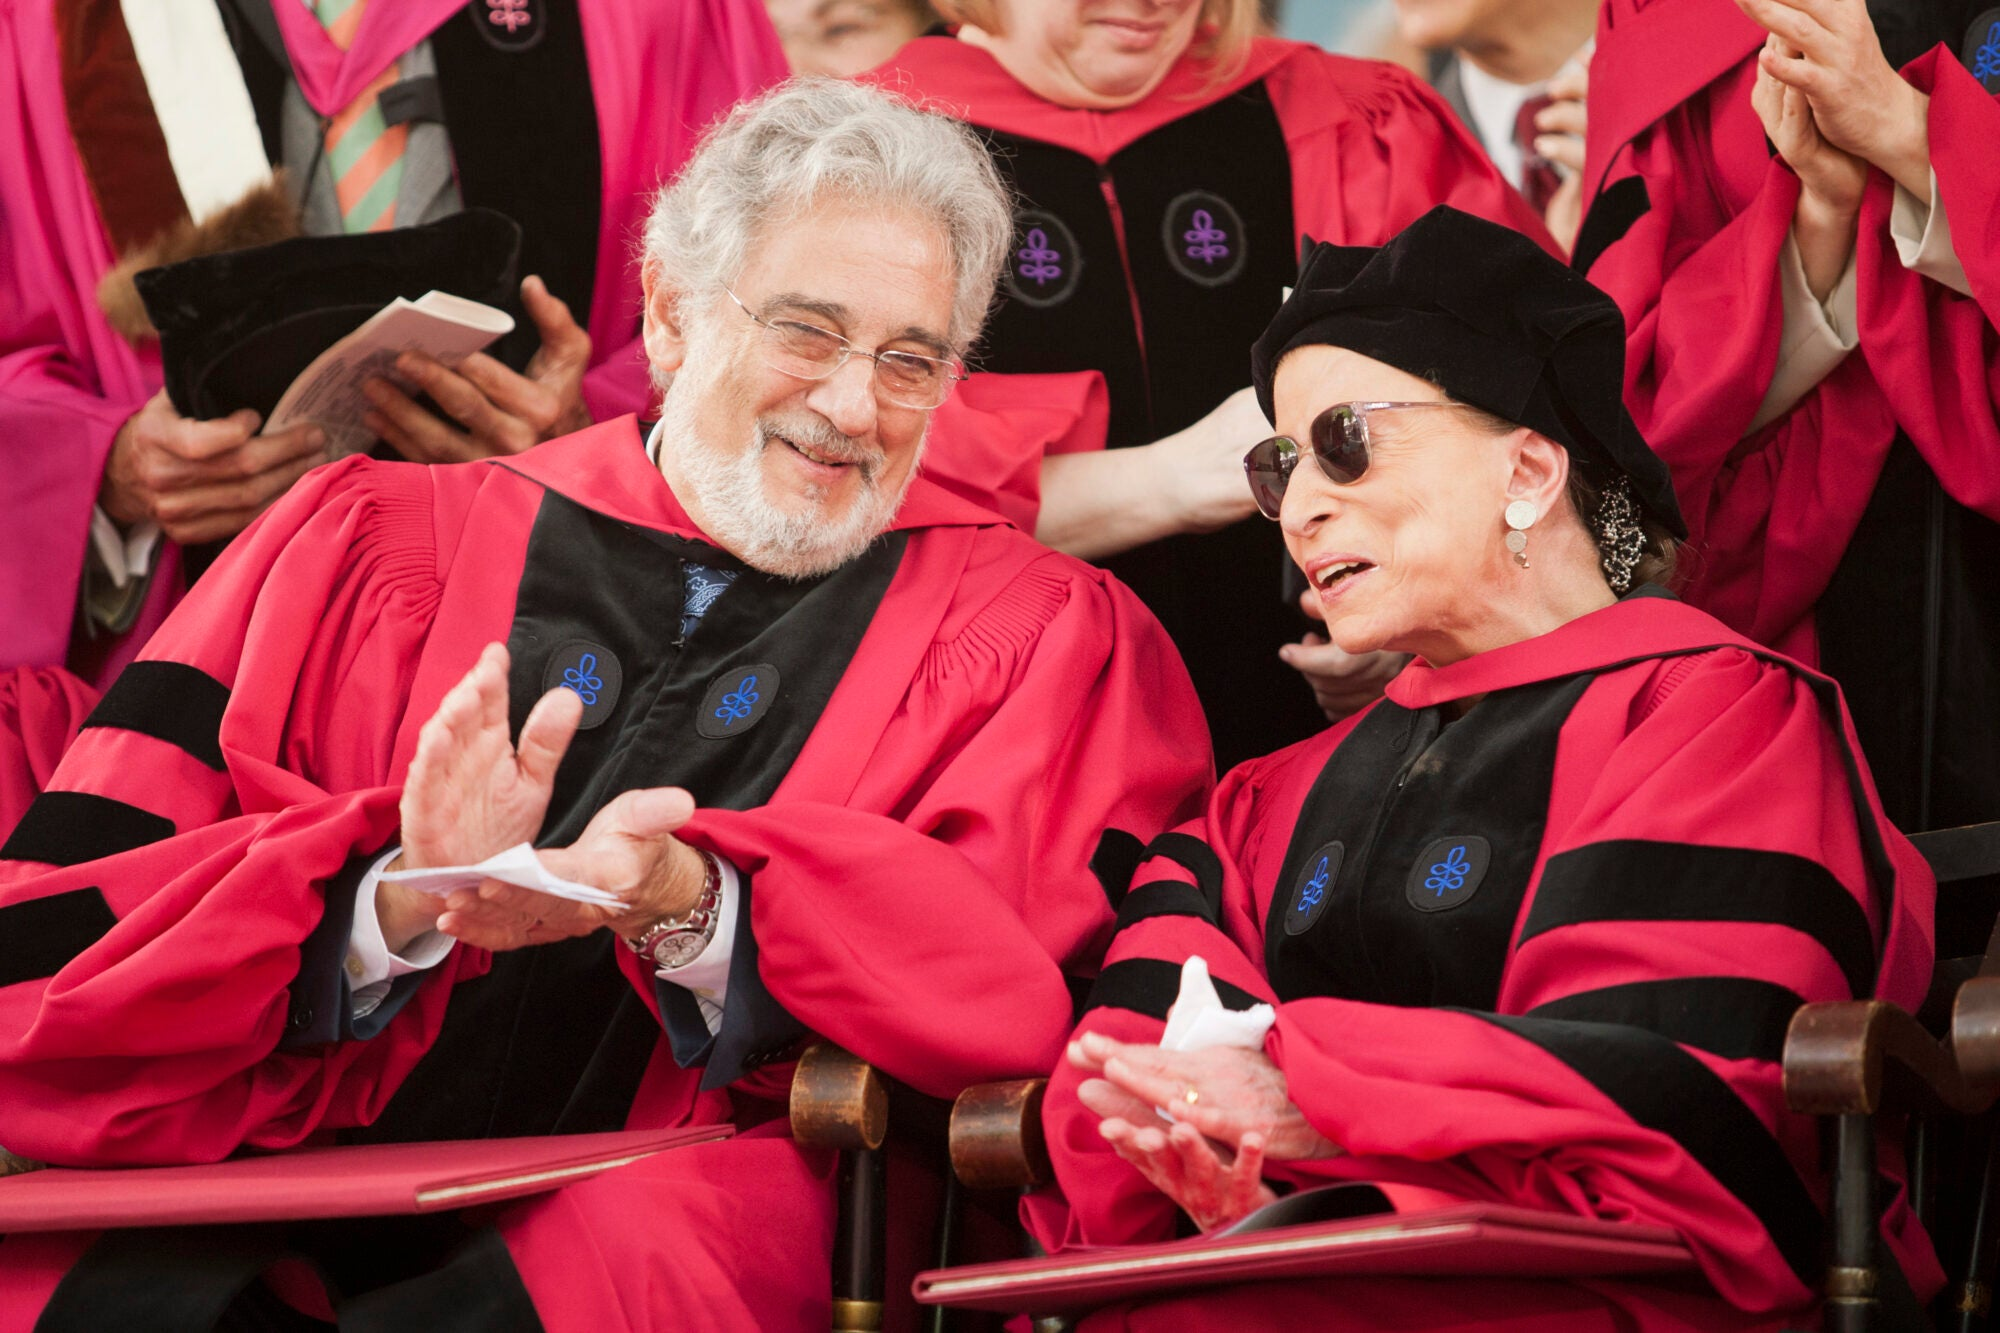 A man and a woman in cap and gown talk